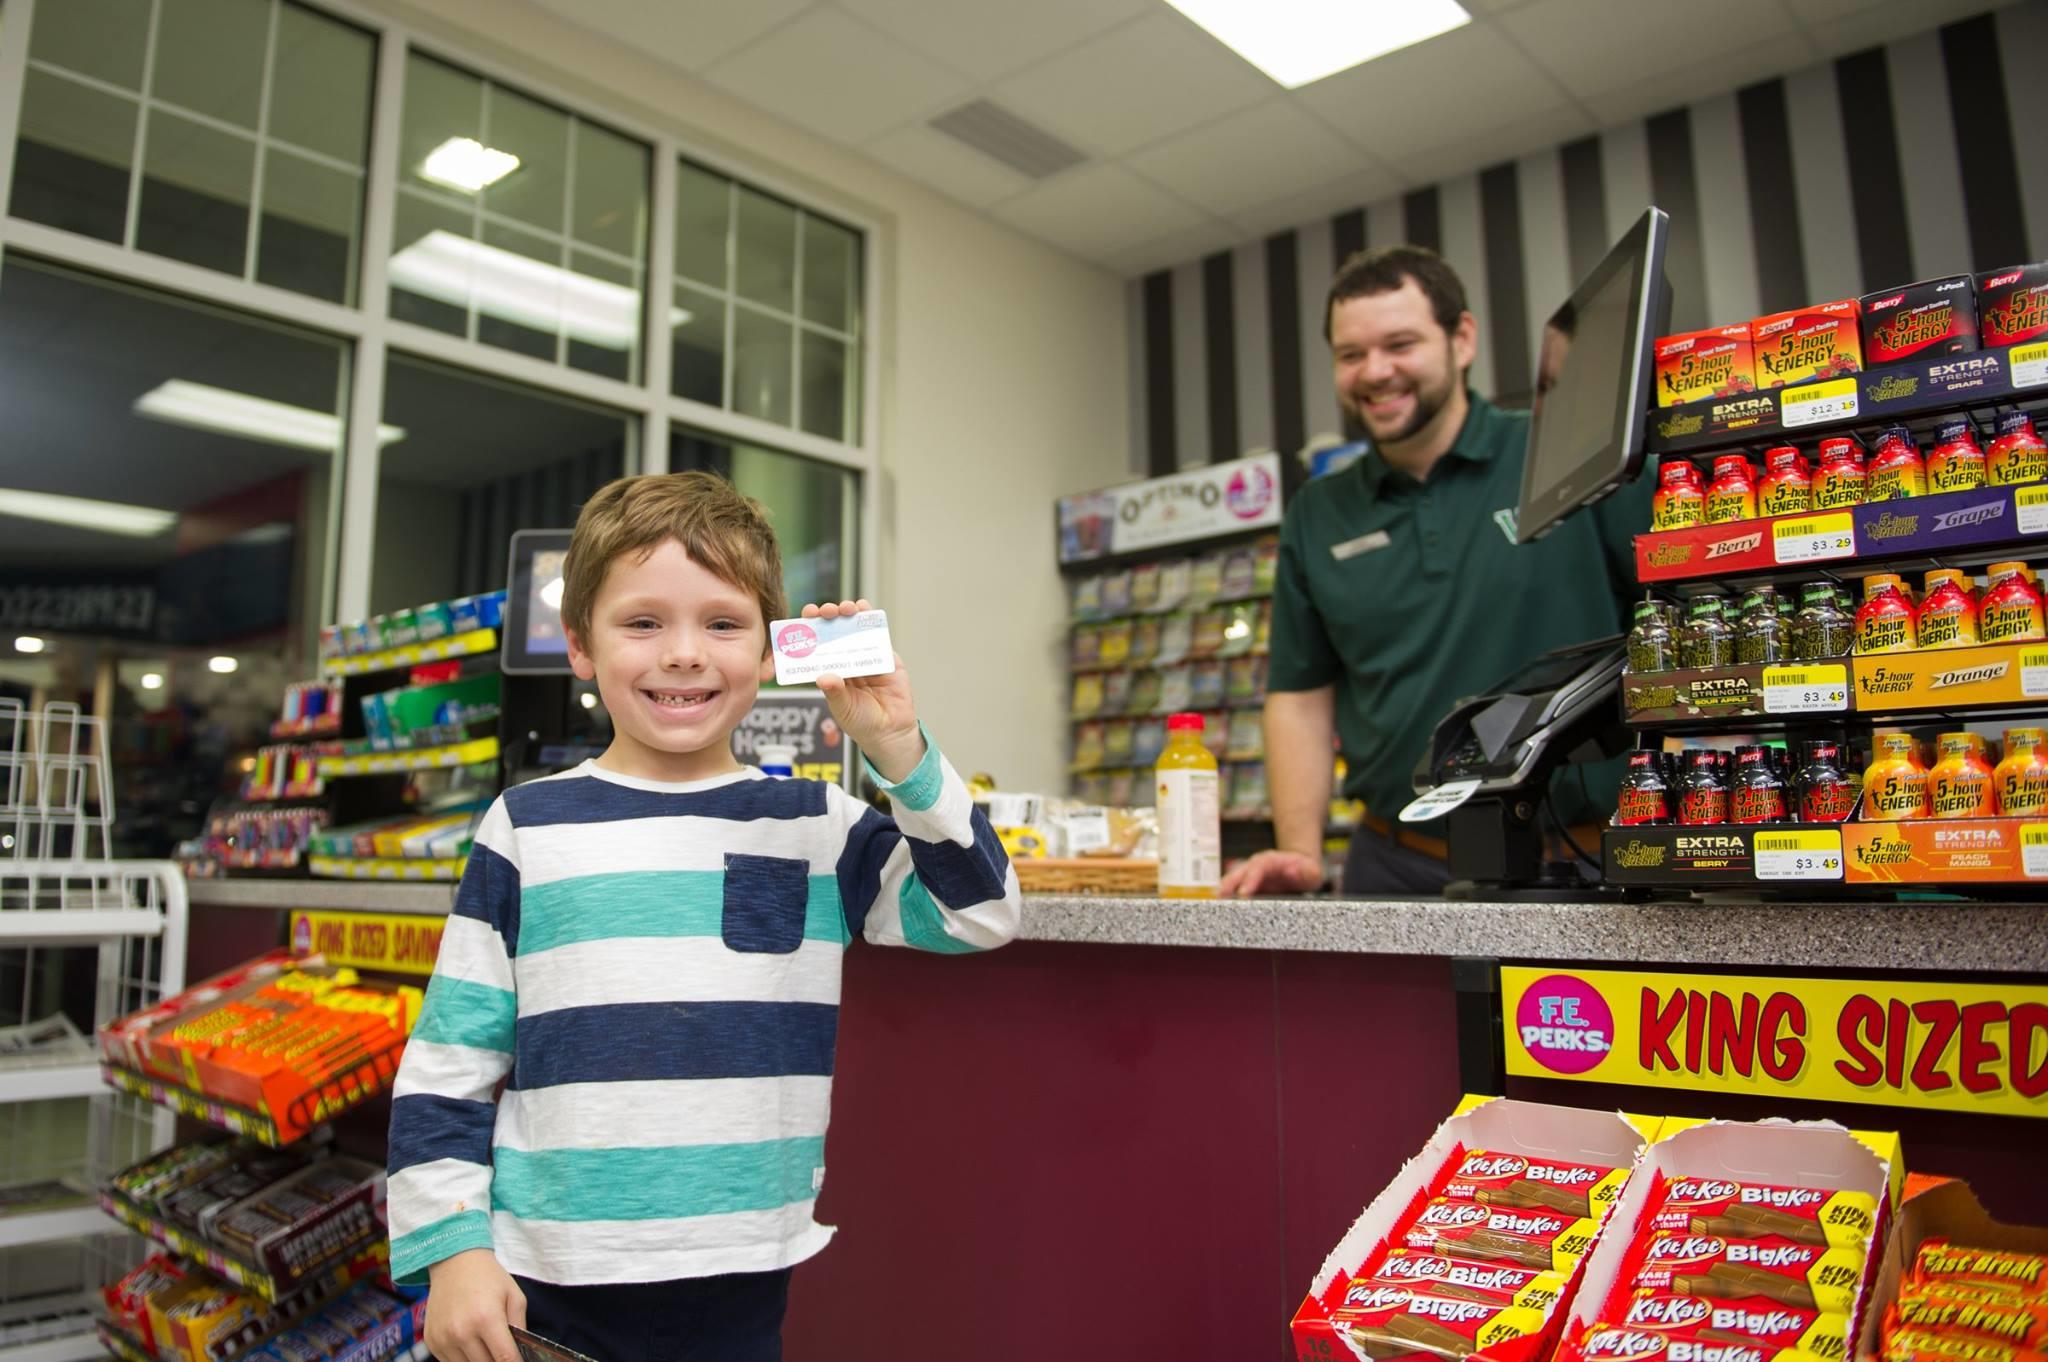 Family Express image 1